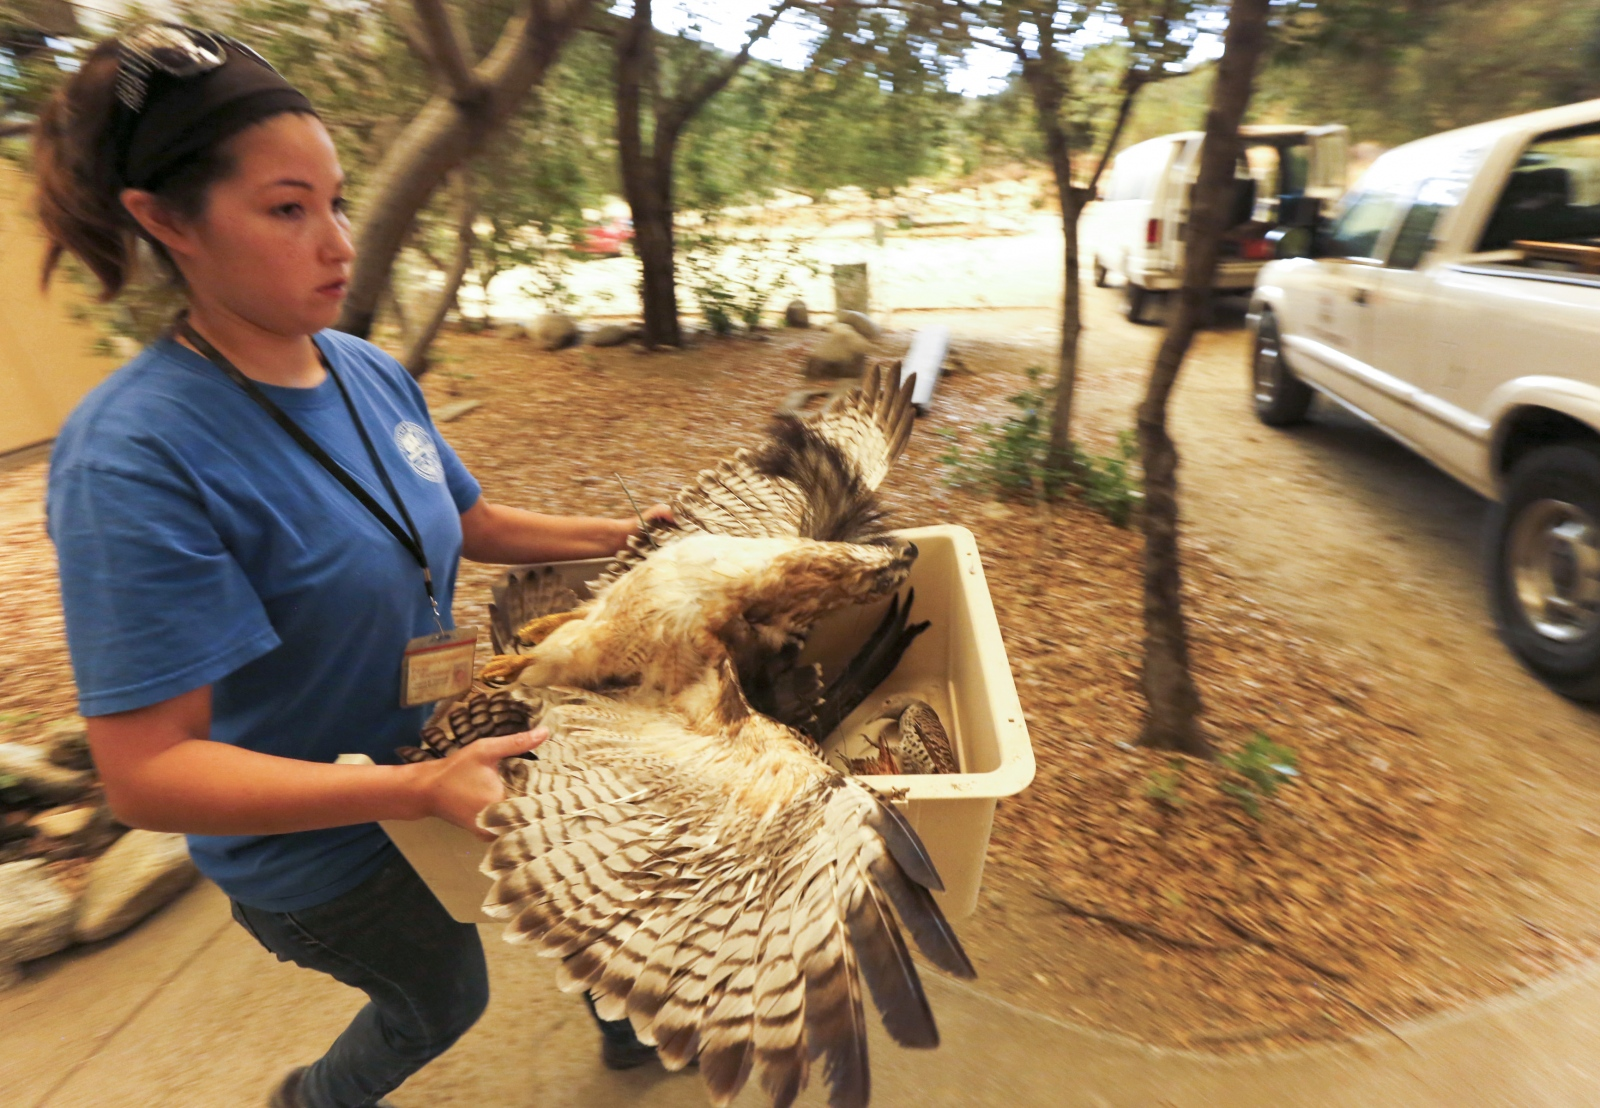 A volunteer loads up a taxidermied hawk into a county vehicle at the Placerita Canyon Nature Center on Placerita Canyon Road evacuate their facility on Saturday, July 23, 2016. Ranger Frank Hoffman said he had been evacuated from the center 14 times in his more than 20 years at the center. Katharine Lotze/The Signal